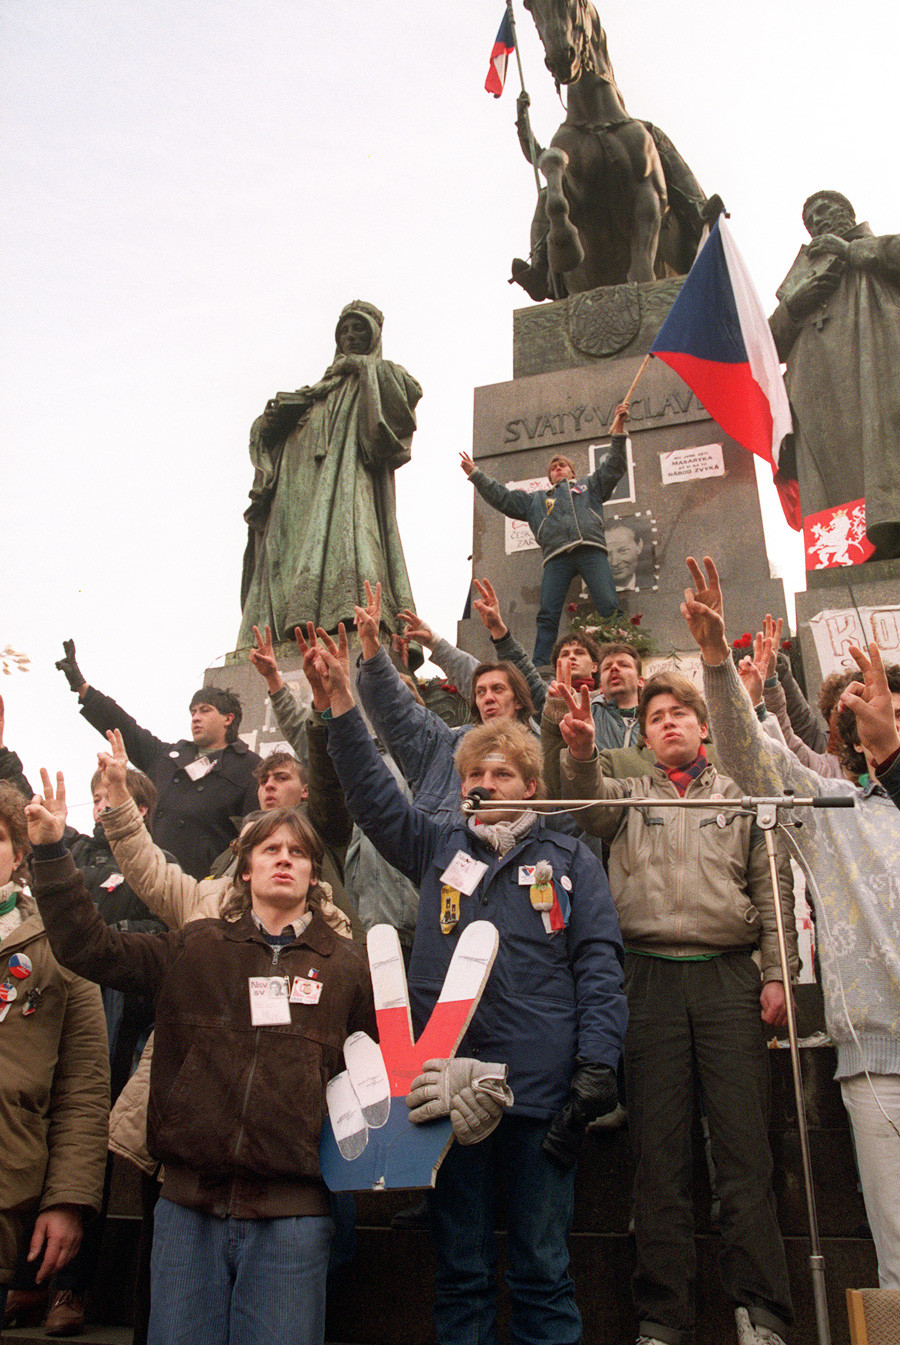 Fall of the Communist government in Czechoslovakia, celebrated by the locals.